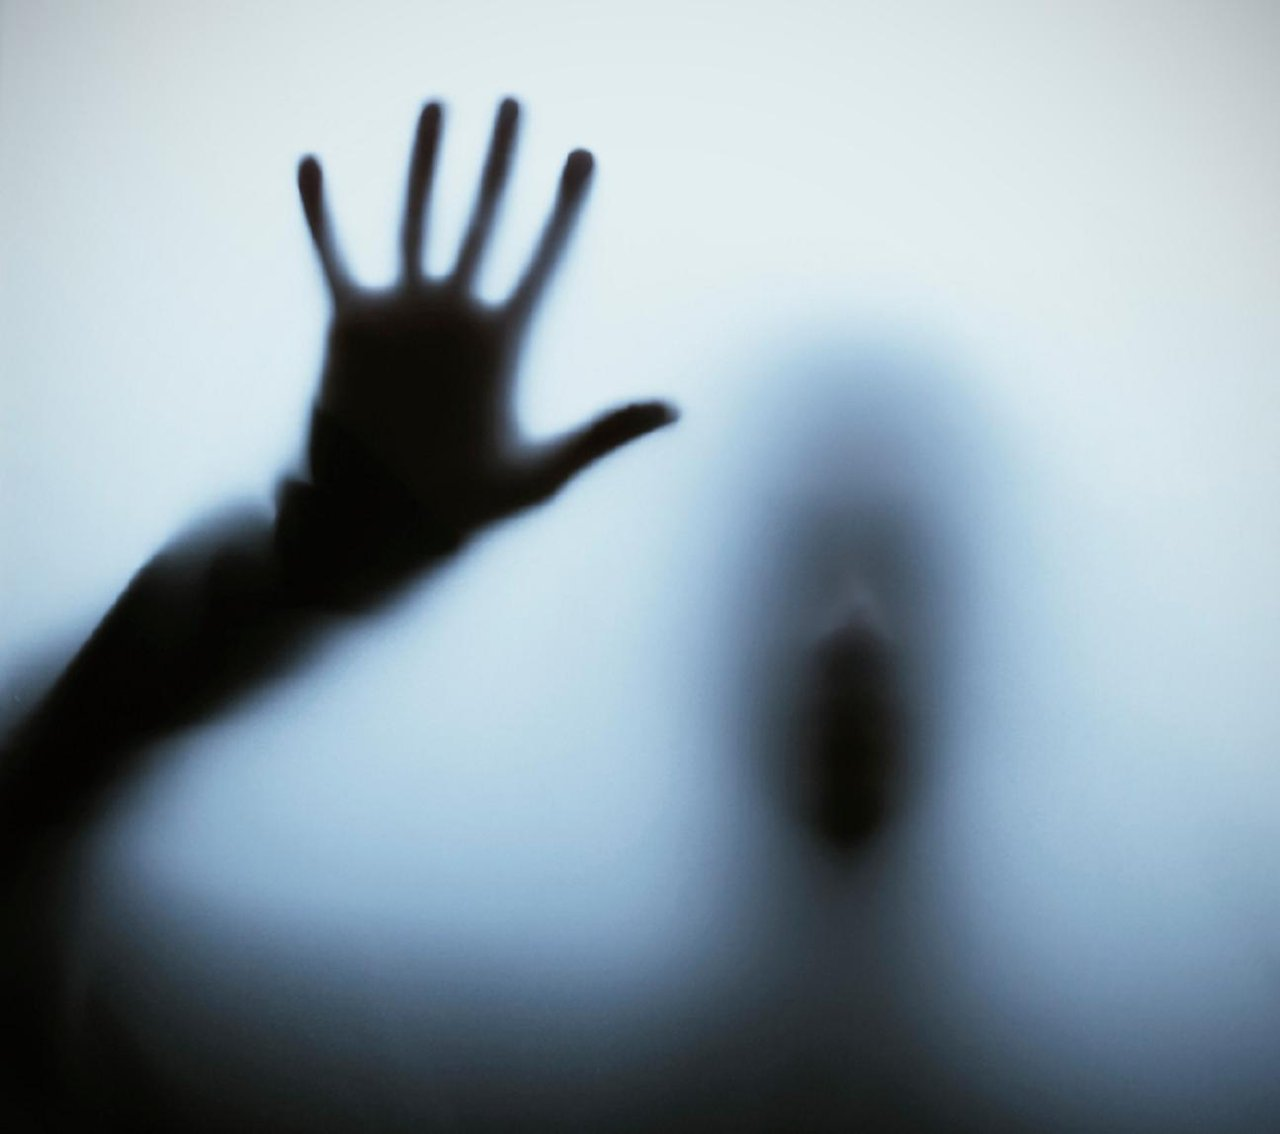 These Two-Sentence Horror Stories Will Give You Chills - Two